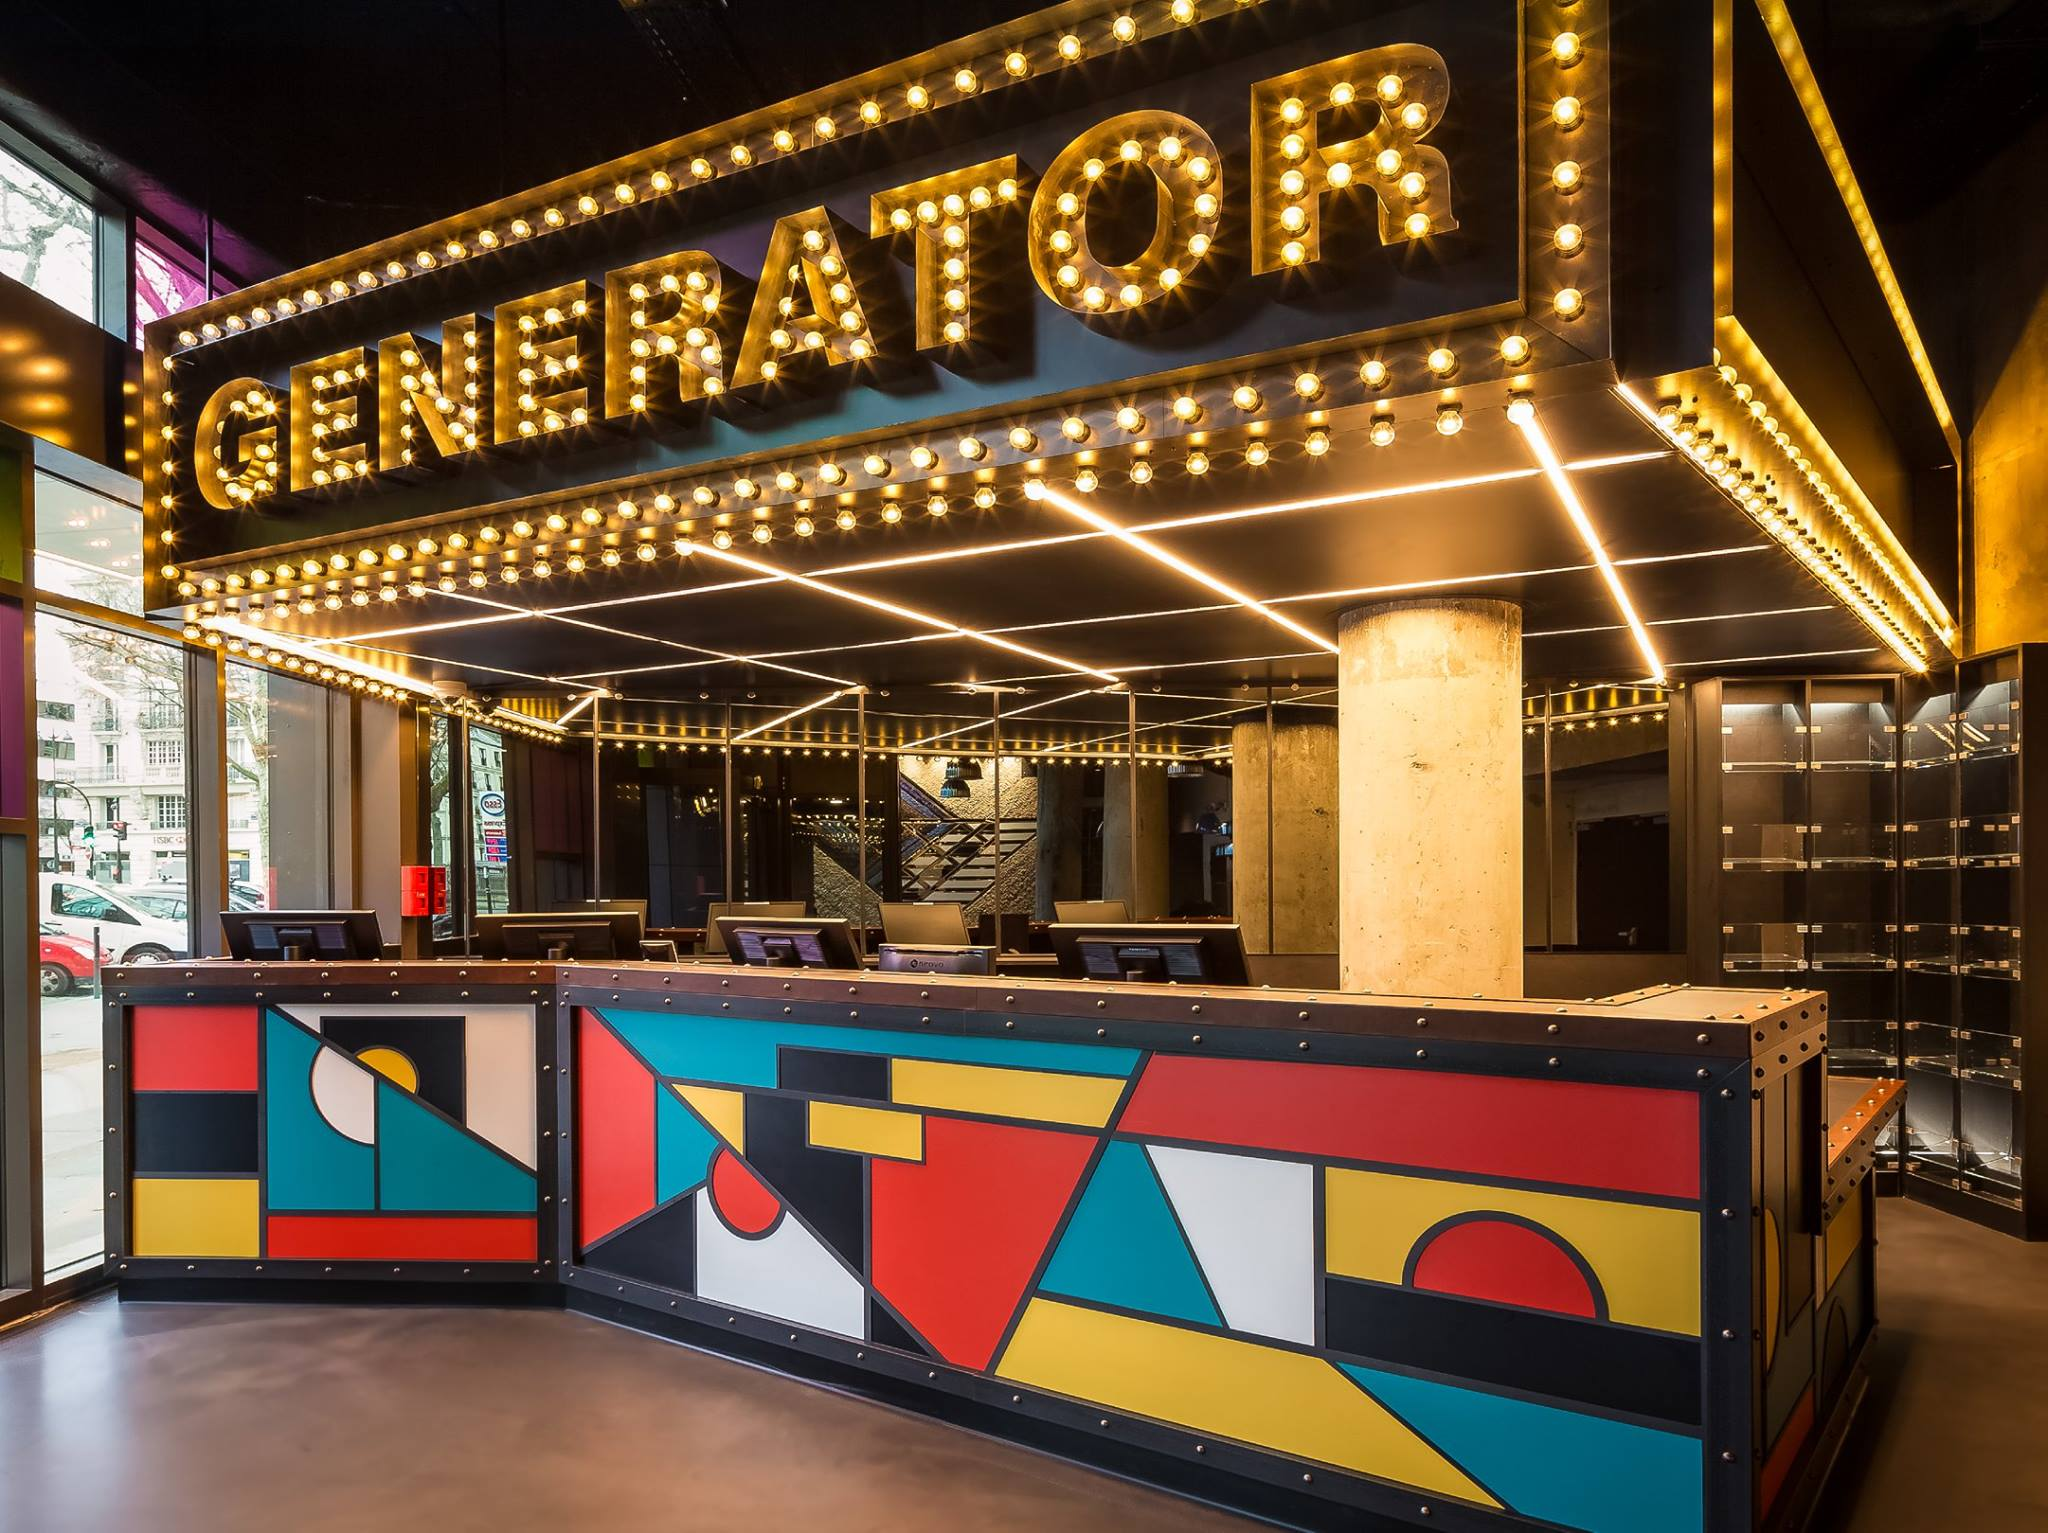 Generator Hostel Content Marketing Strategy - How does the Generator Hostels win over Millennials through content?